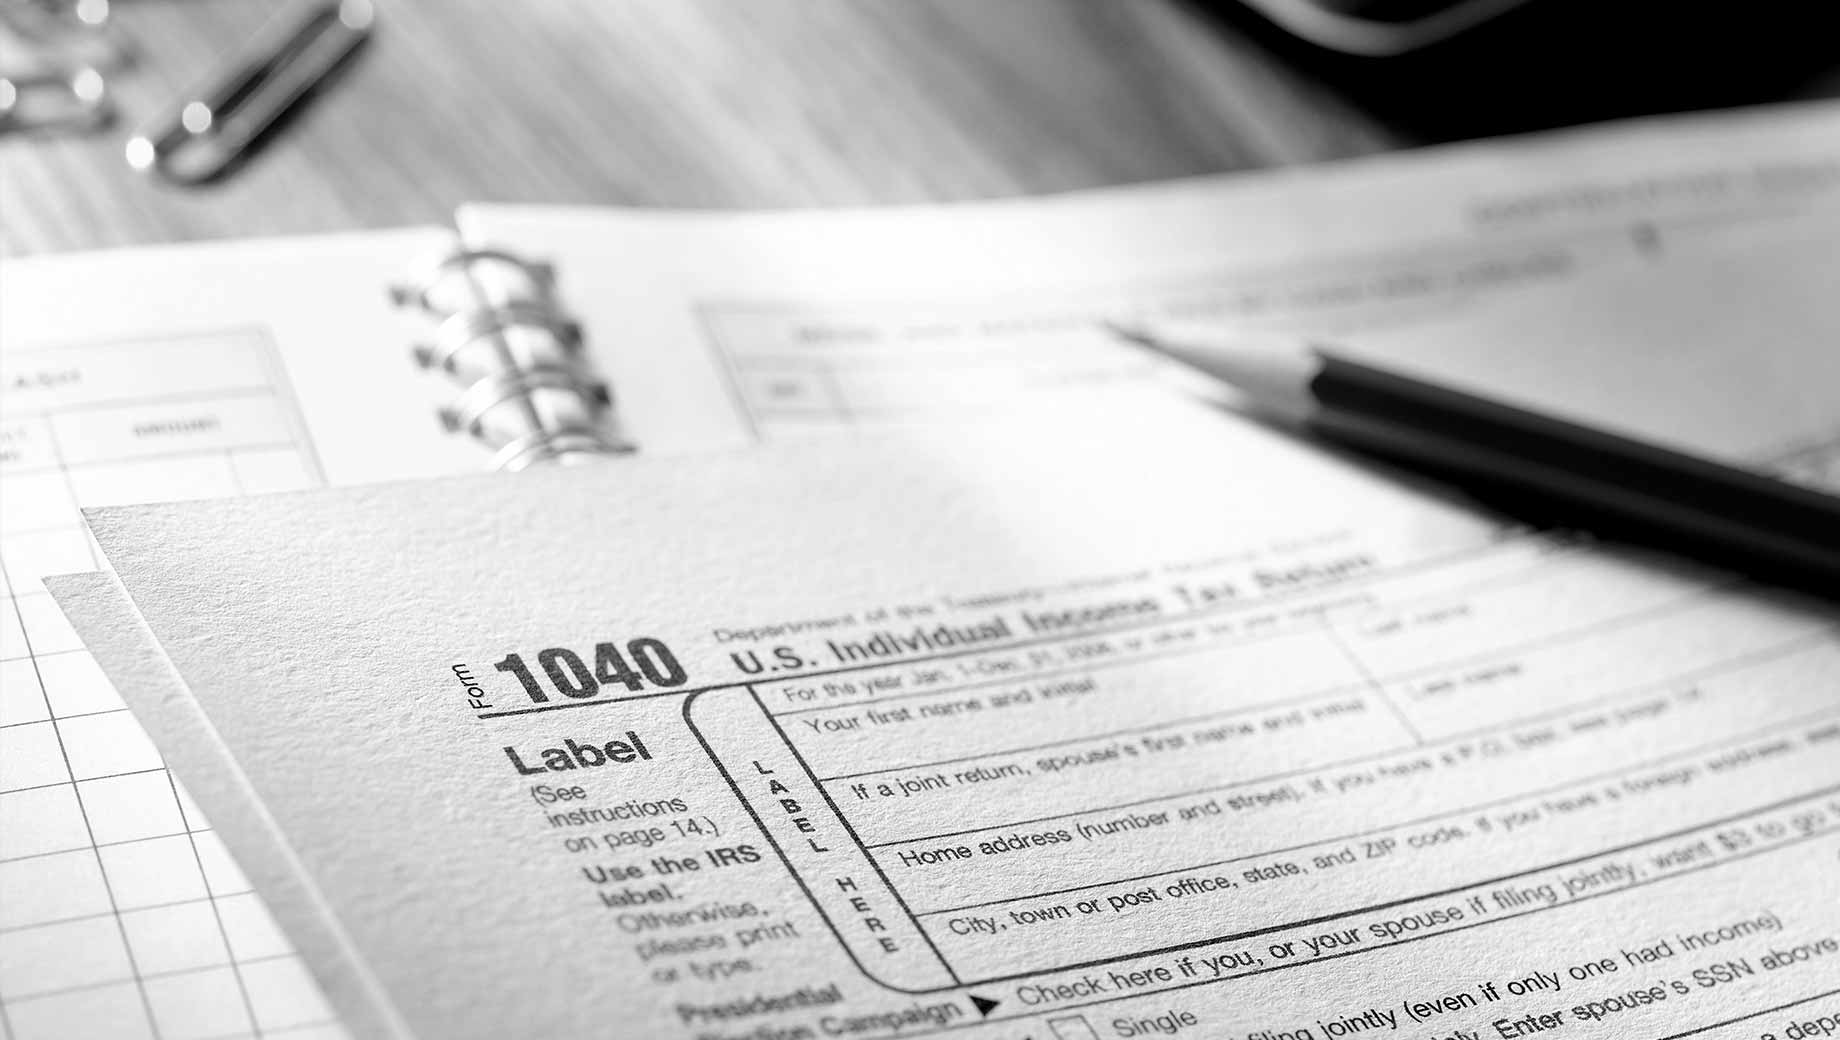 Tax Day Update: Americans Still Not Seeing Tax Cut Benefit